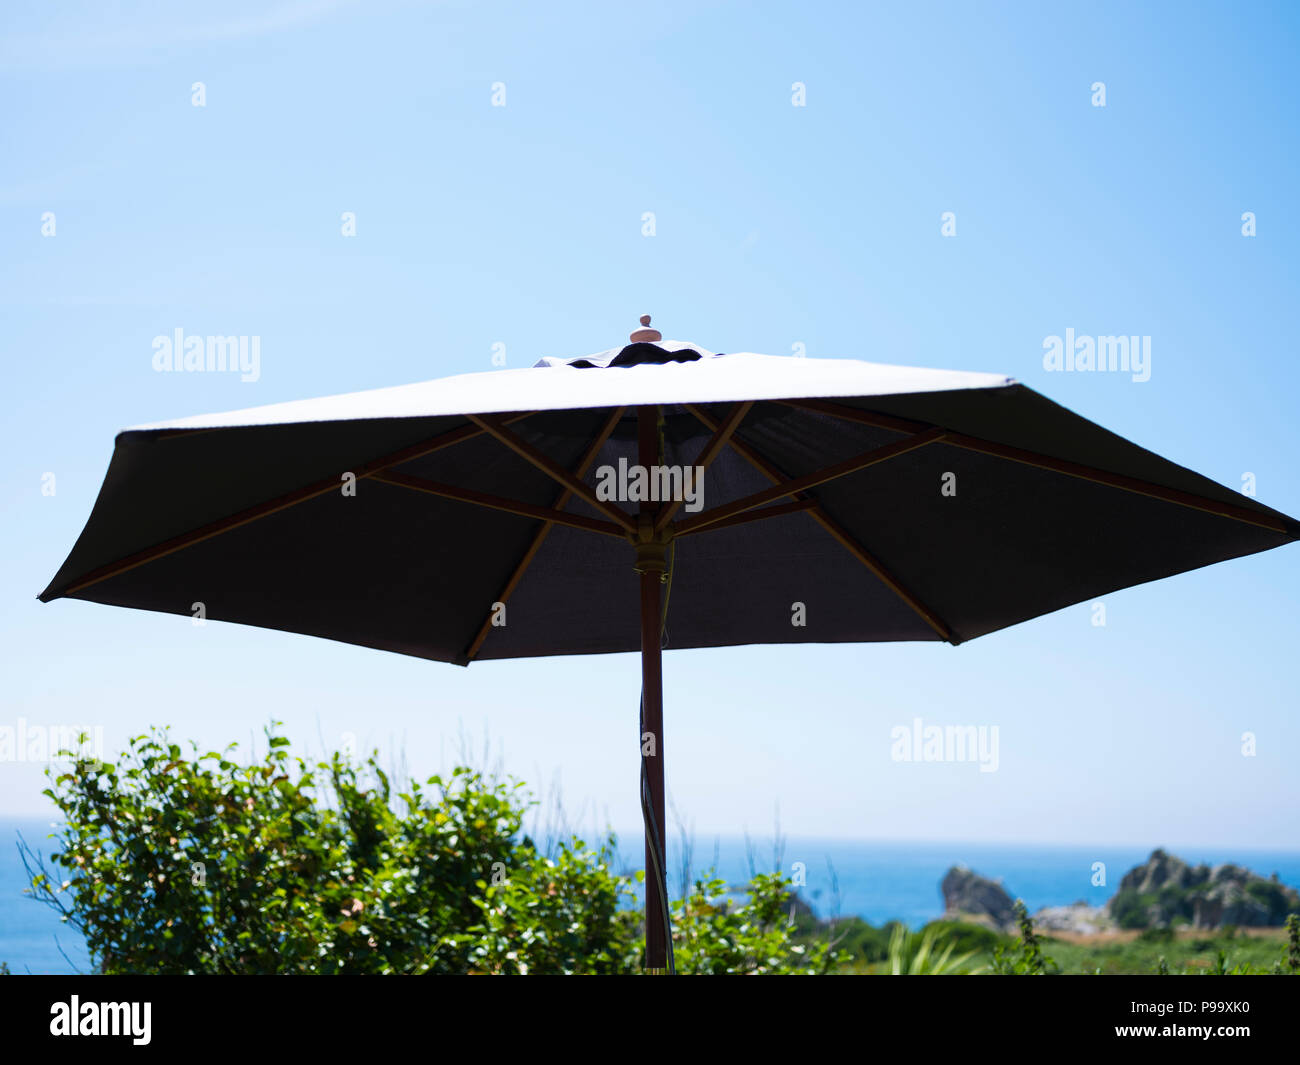 Picnic Table Parasol Stock Photos Picnic Table Parasol Stock - Picnic table parasol